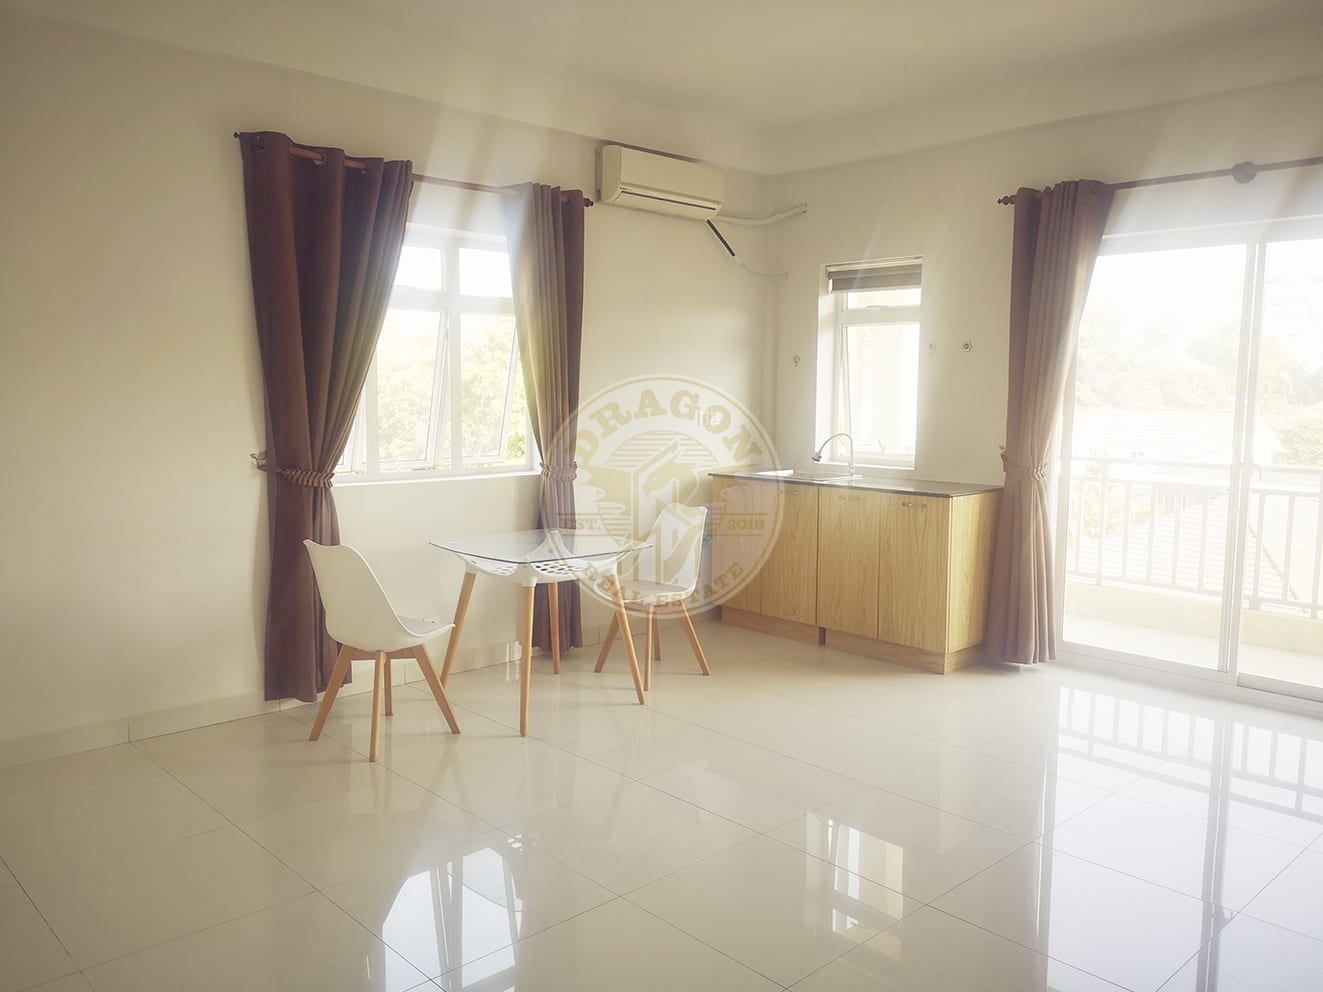 Apartment w/ One balcony for Rent. Sihanoukville Real Estate